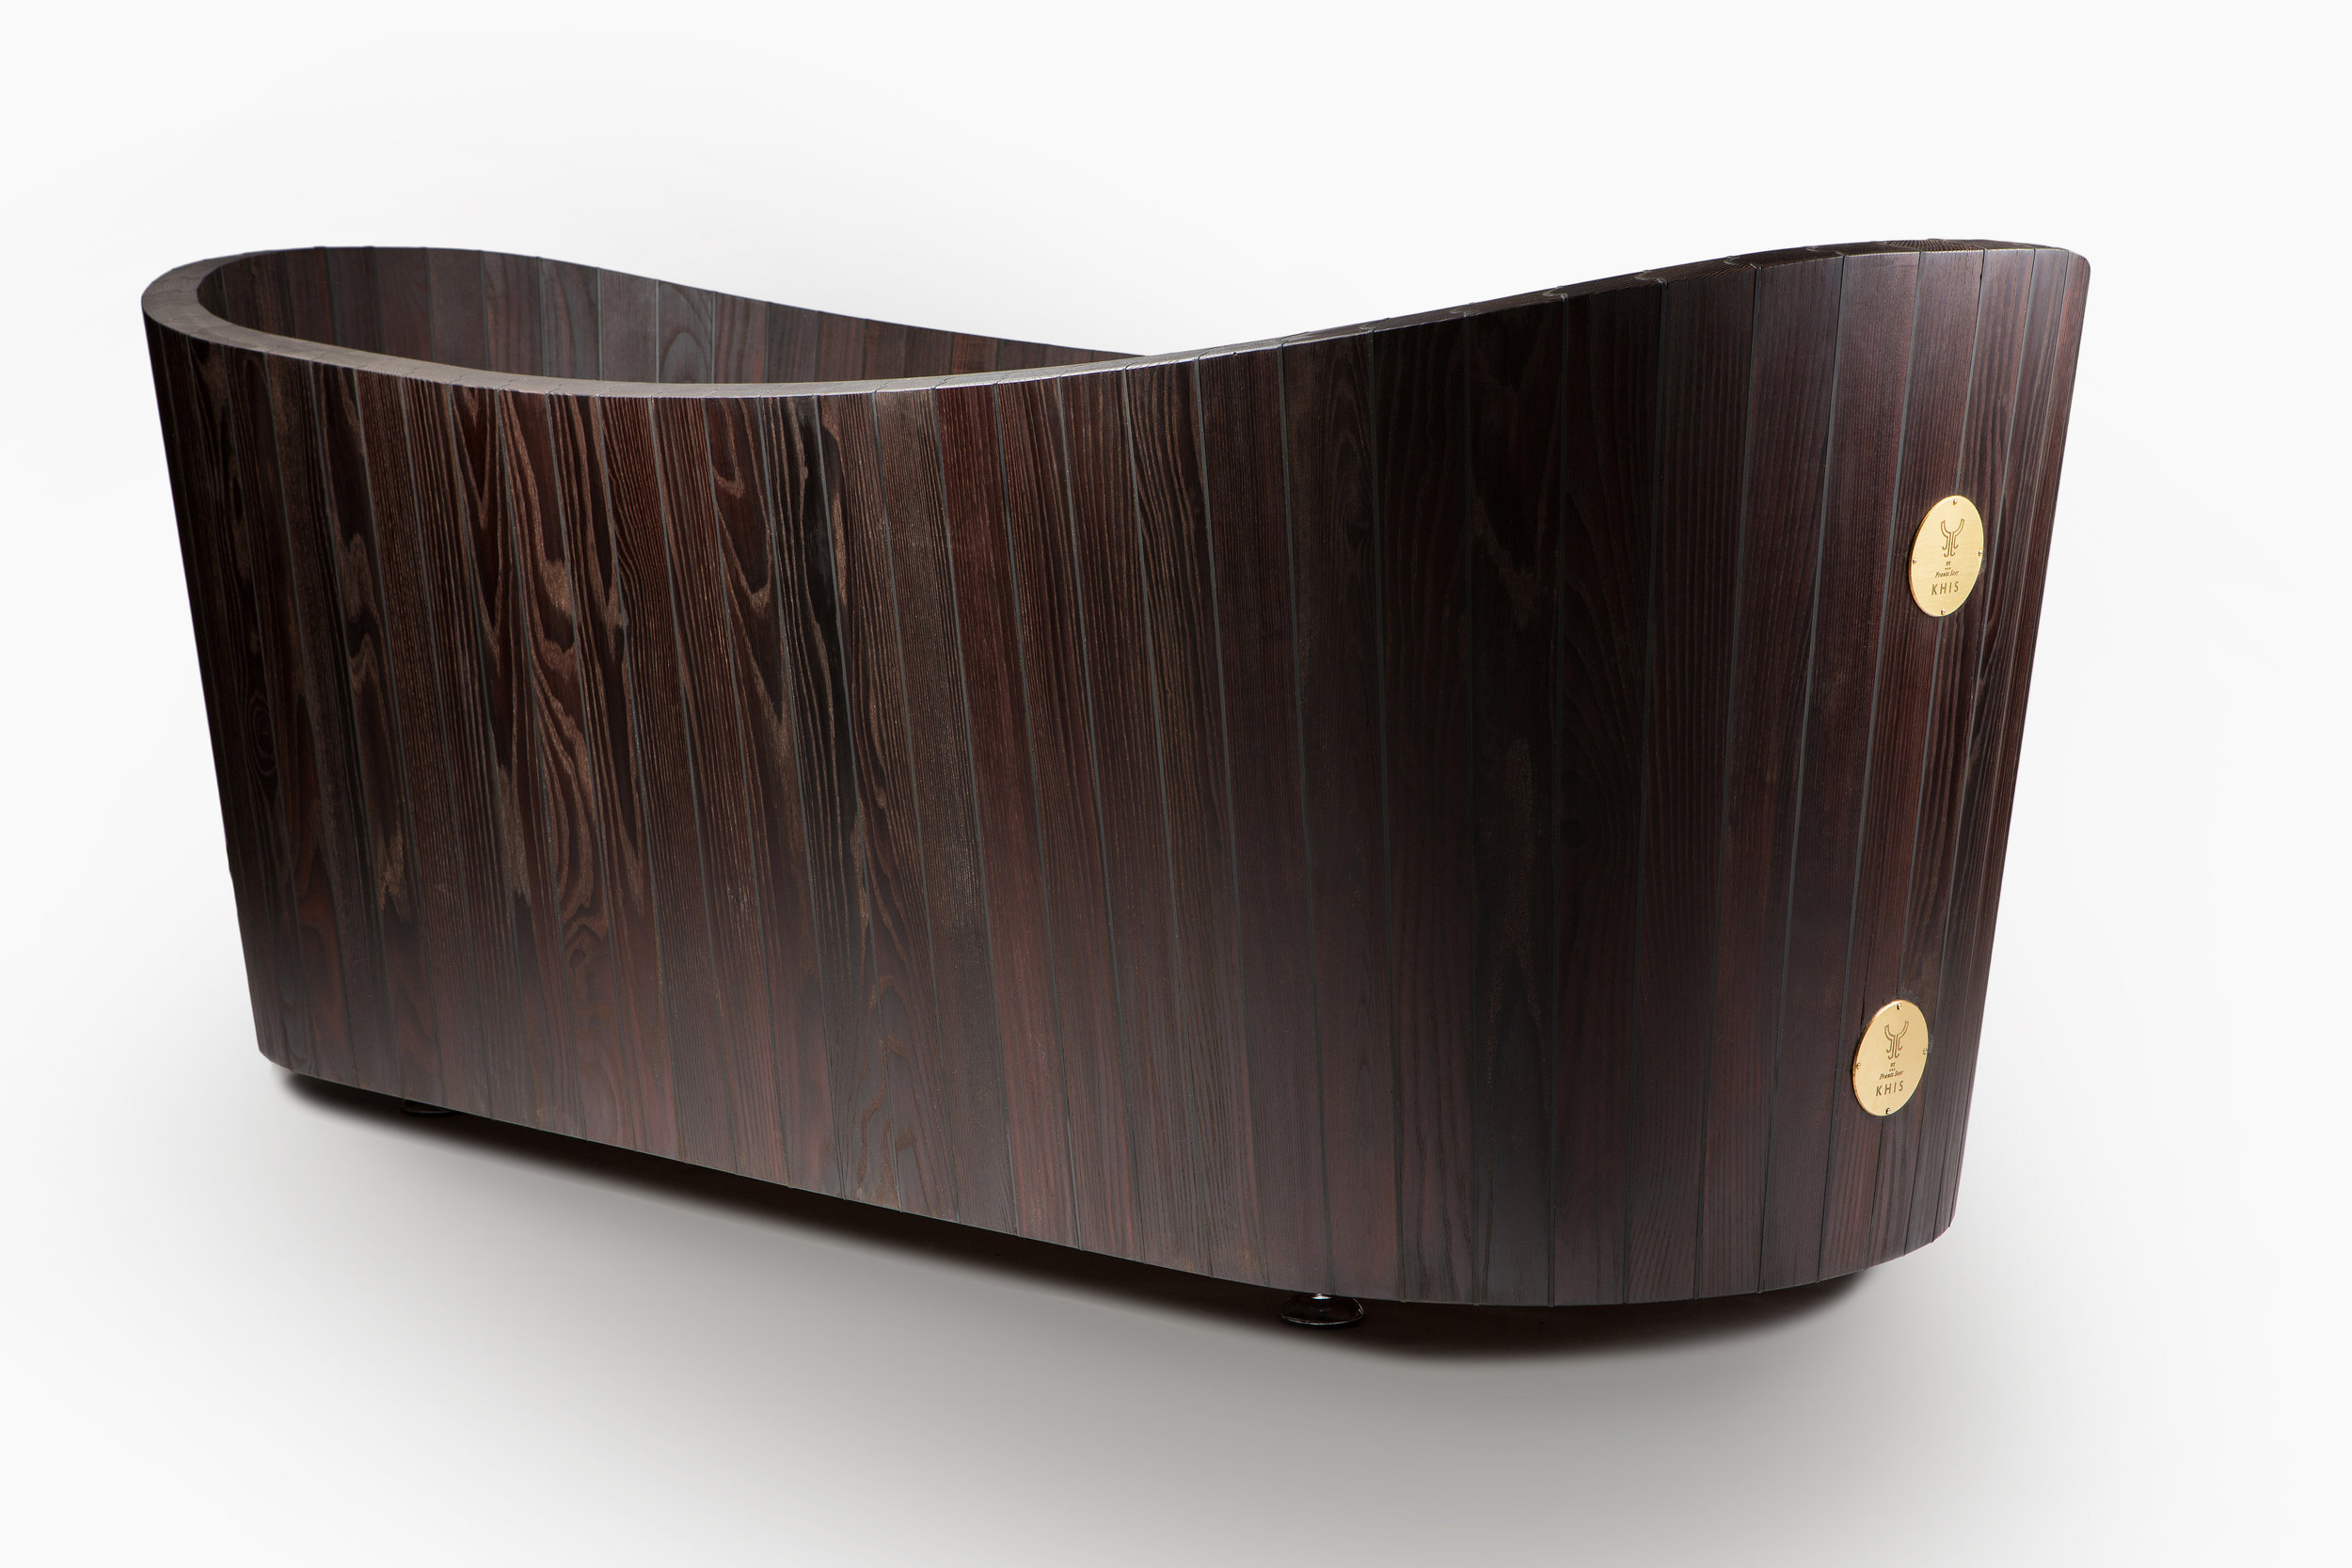 'Eternal KHIS' wooden bathtub.